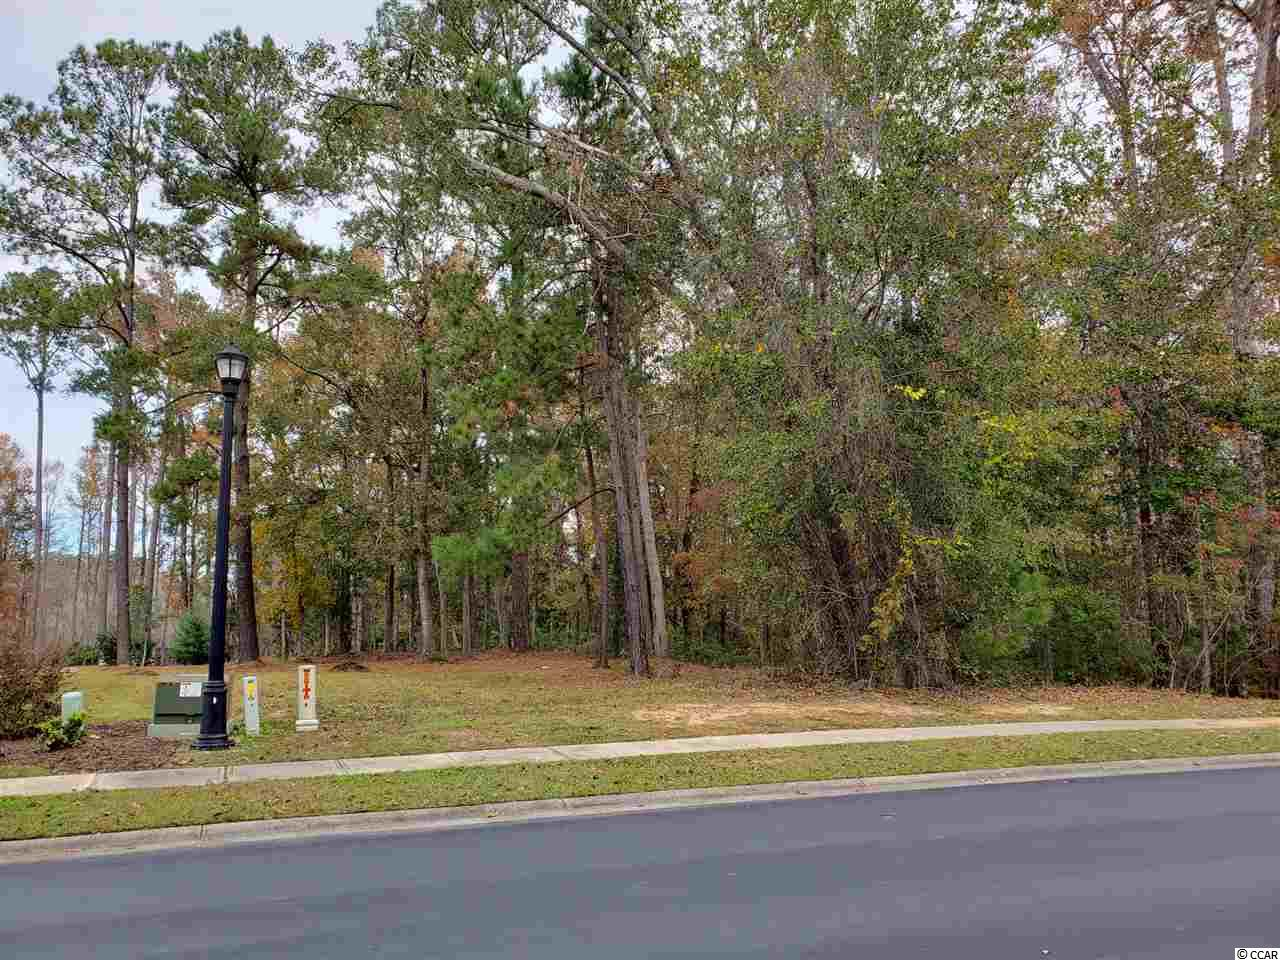 Spacious and desirable waterfront wooded lot overlooking the Intercoastal Waterway in an excusive gated community - waiting for you to build your new home on! Land features its own private dock, wooden walkway and boatslip, access to utilities and sidewalk on the frontage.  Excellent location in the gorgeous, sought-after Cypress River Plantation subdivision which includes the following amenities: convenient private boat storage across from boat landing, well-manicured landscaping and water fountain, 24 hour security and guard gate, private clubhouse with two swimming pools and lounge area, tennis court, gym facilities and playground. Land has not flooded and is well positioned within this subdivision with added privacy as the neighboring lot to the right consists of wetlands.